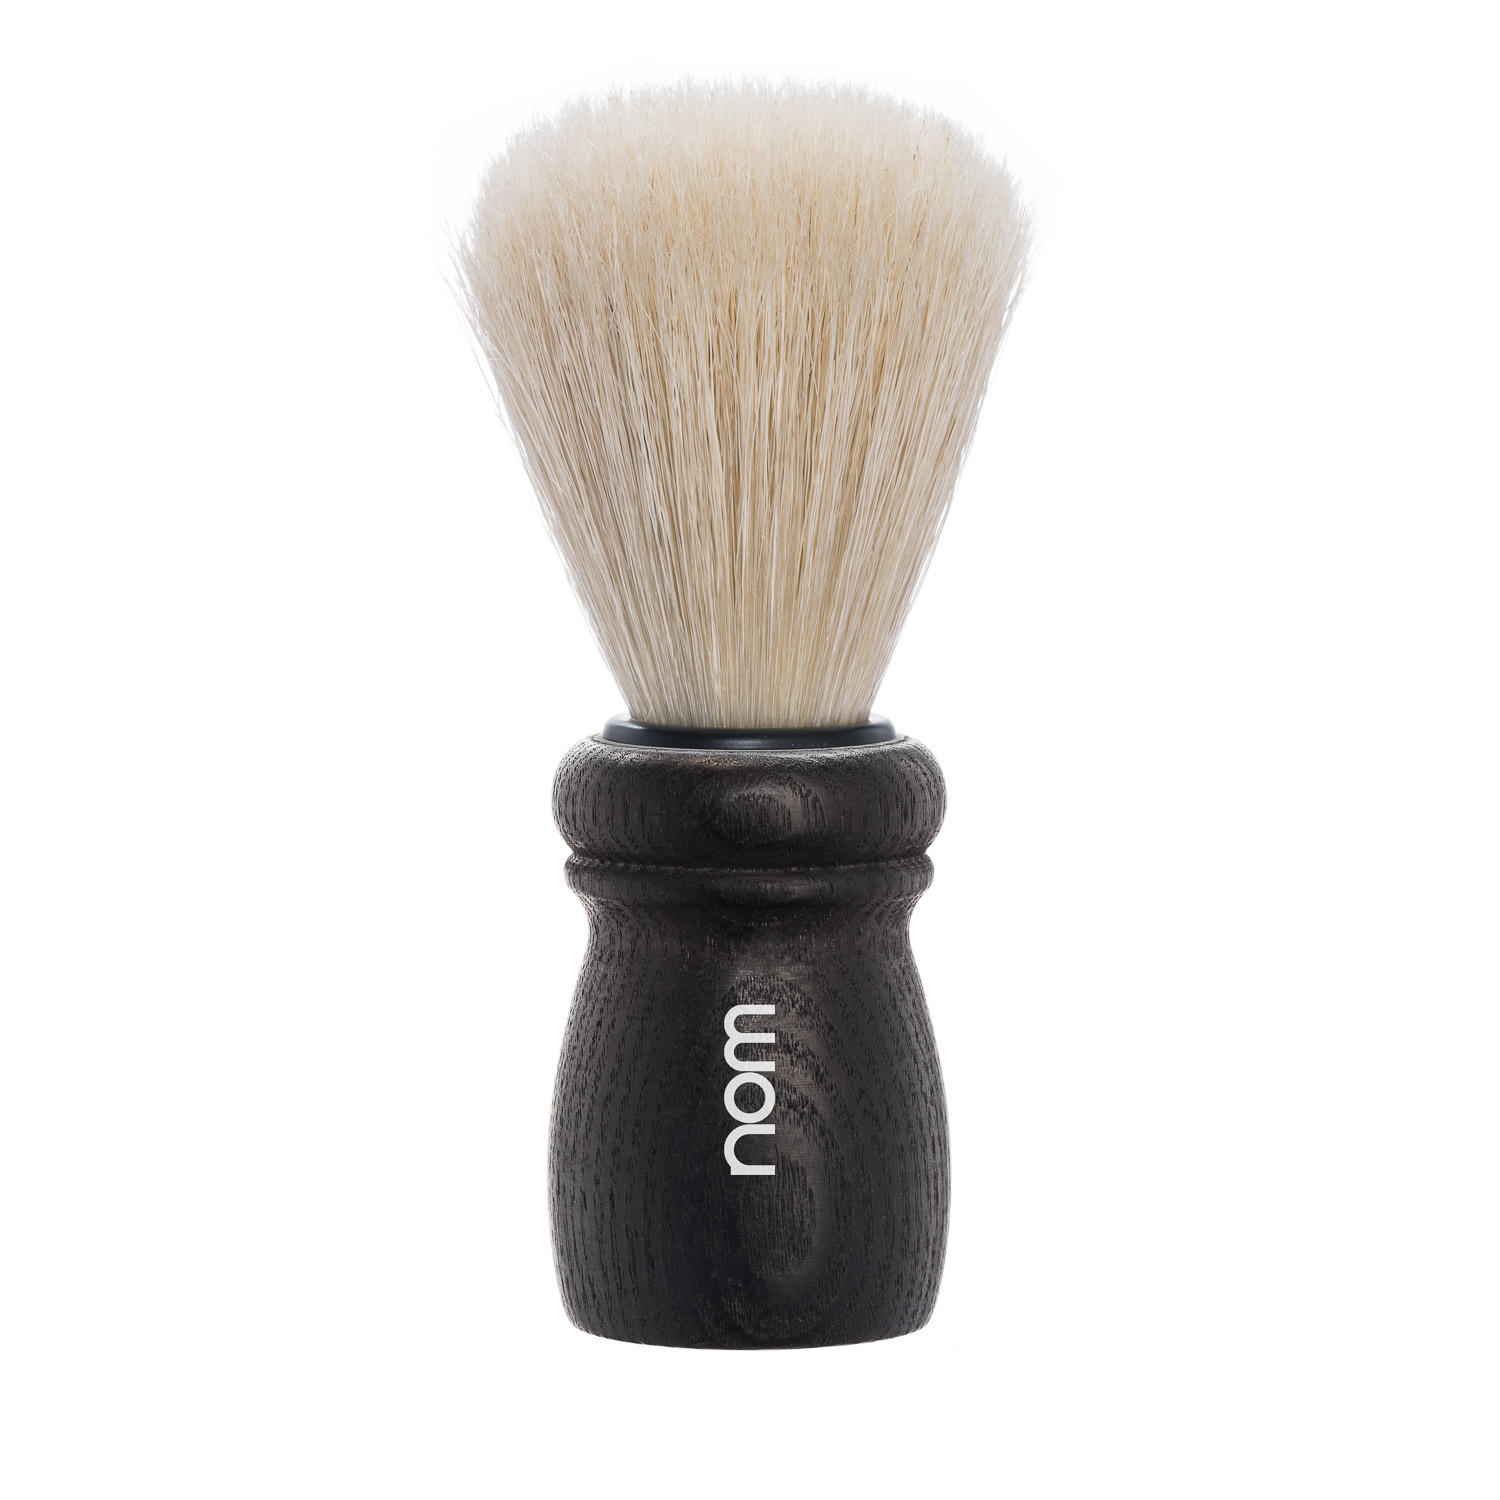 ALFRED15BA nom ALFRED, Black Ash, Long Natural Bristle Shaving Brush